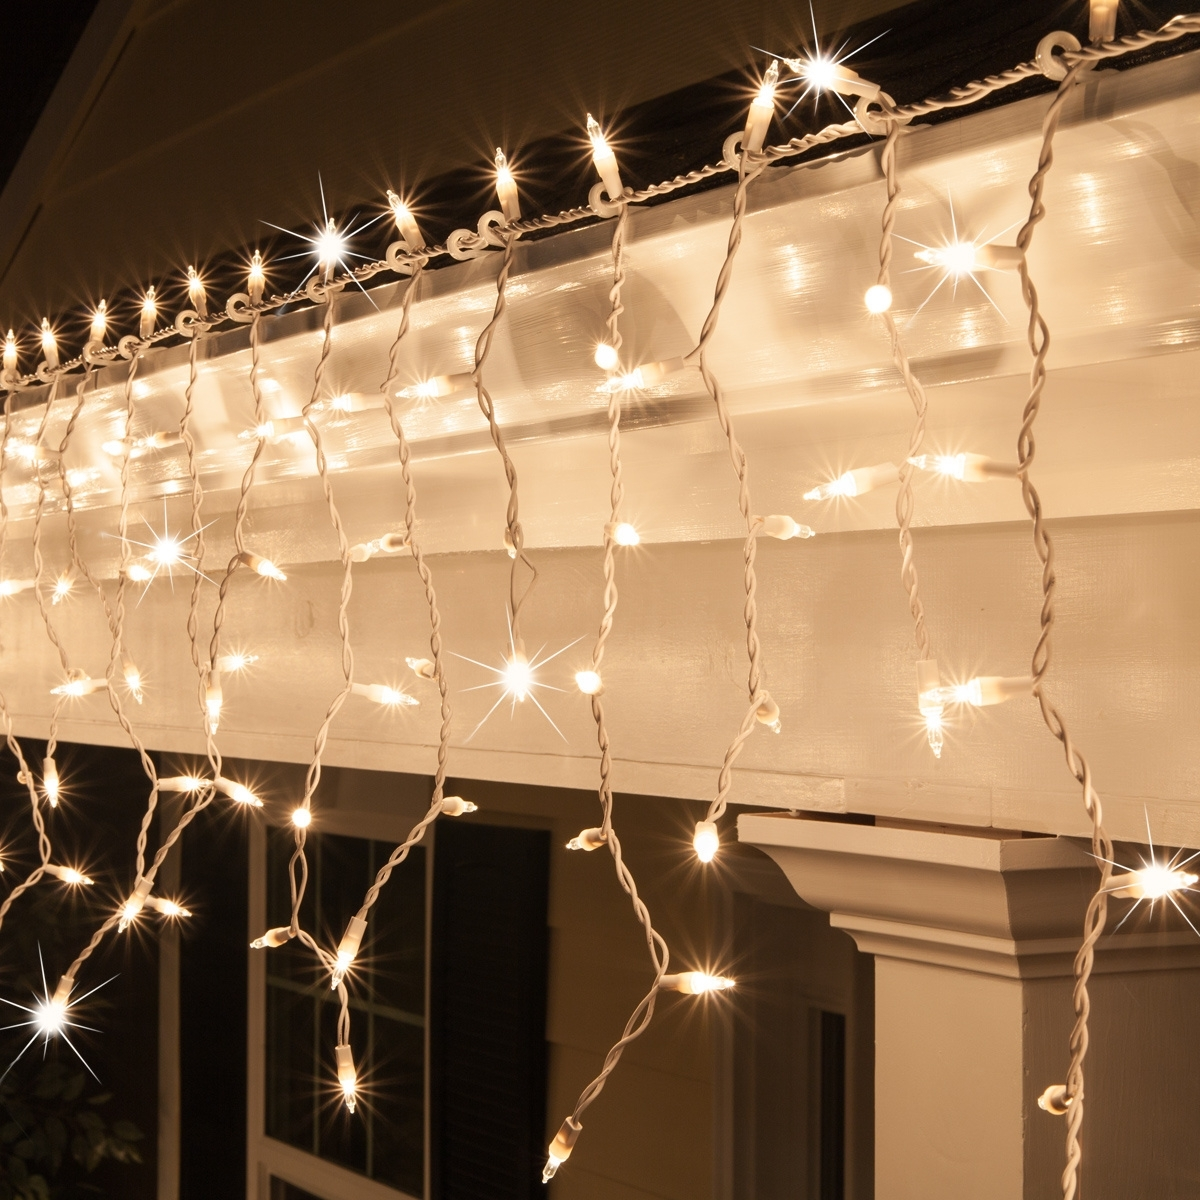 Outdoor Hanging Xmas Lights In Most Recently Released Christmas Icicle Light – 150 Clear Twinkle Icicle Lights – White Wire (View 6 of 20)